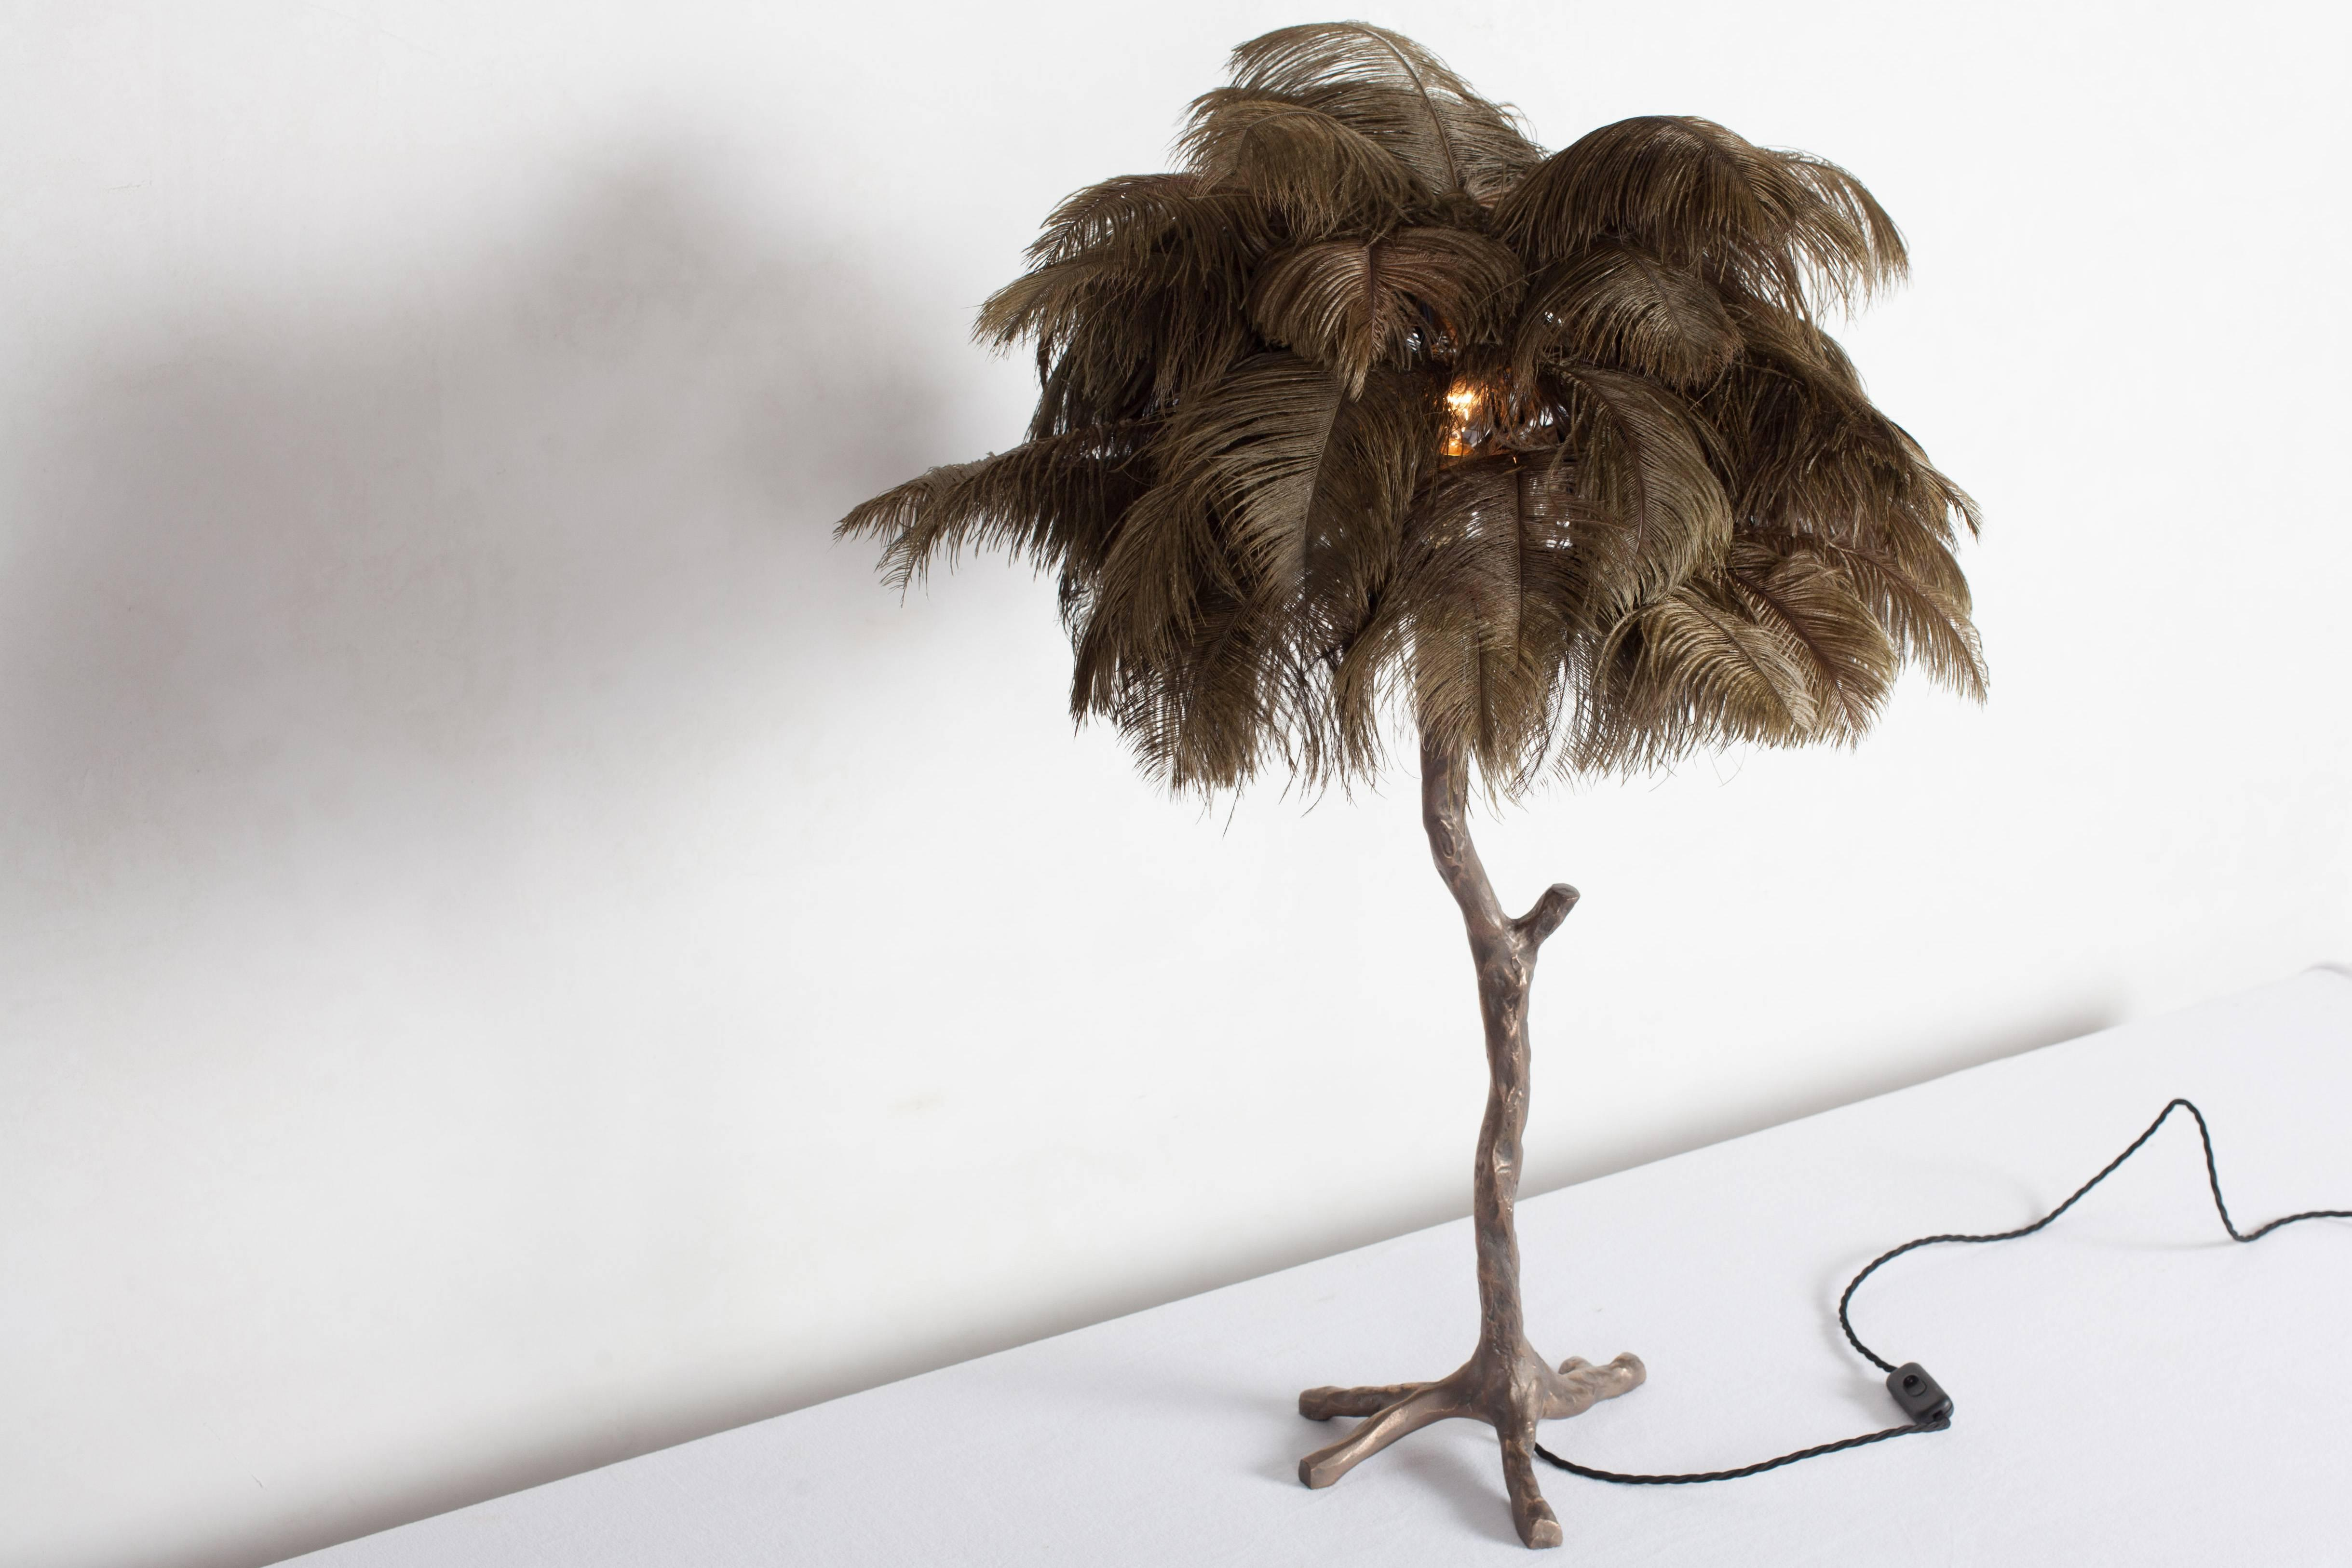 bronze and moss green feathered table lamp from decaso vintage lighting - feathered lamps - feather lamps - vintage furniture - vintage design - unique lighting - unique table lamps - bronze table lamps - nature inspired lighting